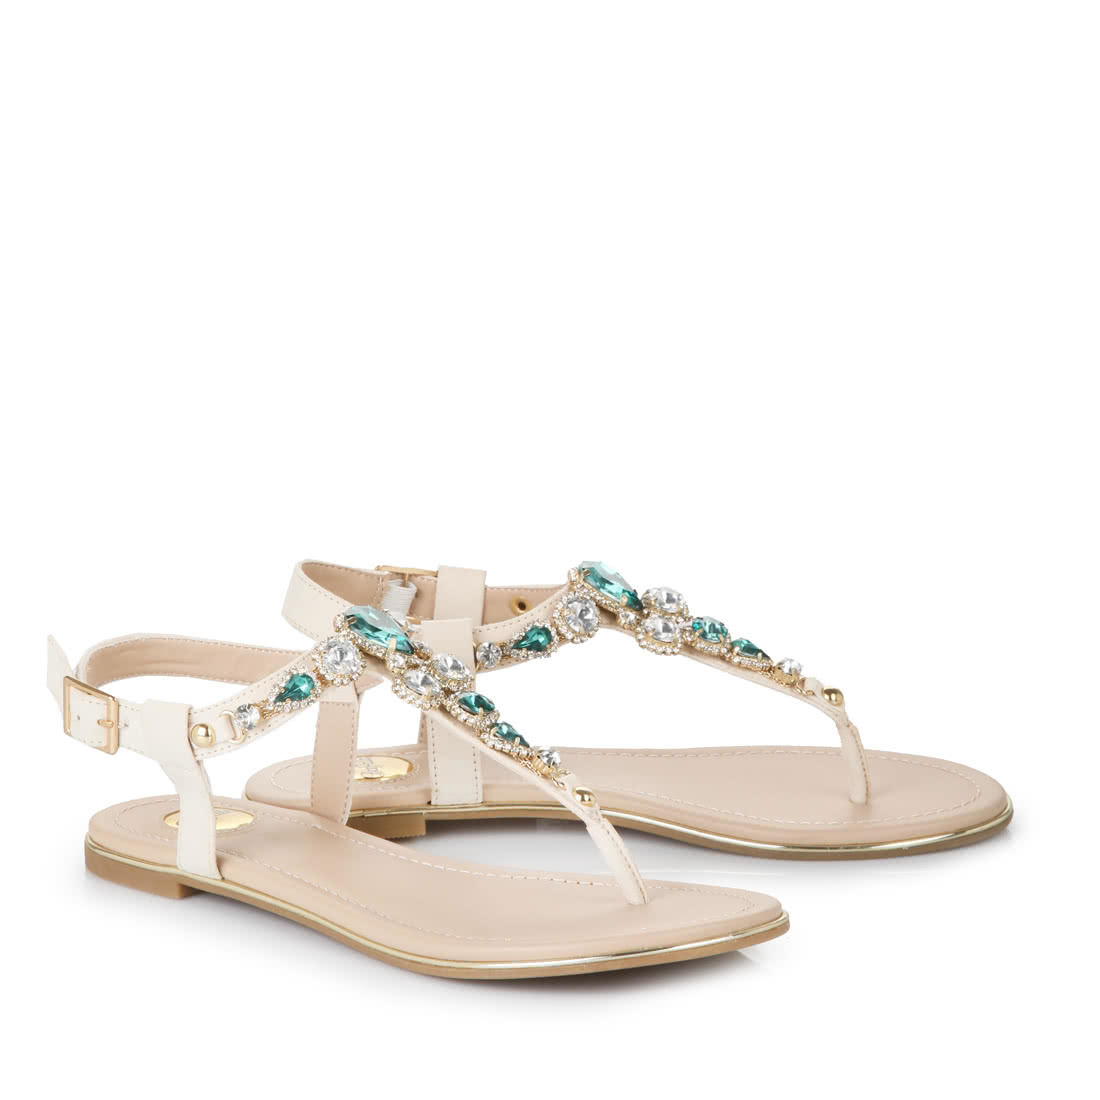 buffalo flip flops in beige with green stones buy online. Black Bedroom Furniture Sets. Home Design Ideas